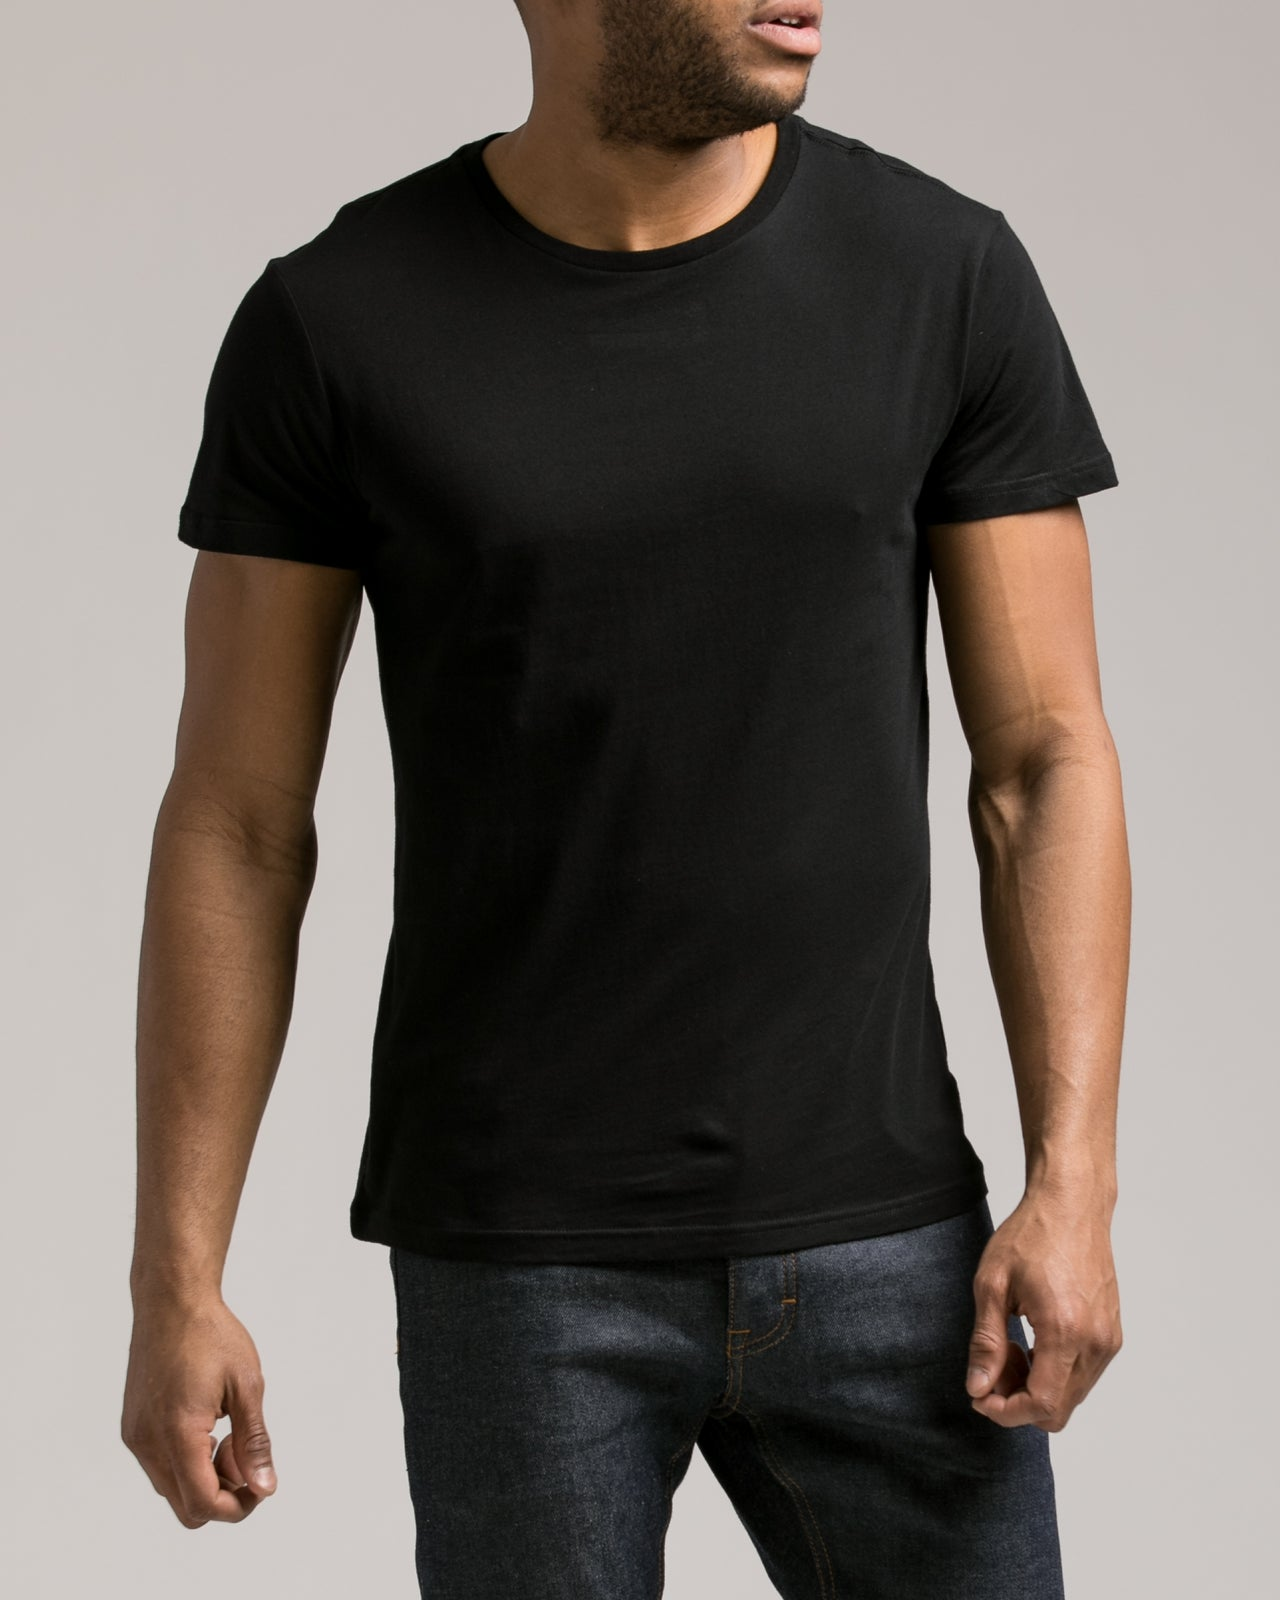 The Daily Tee 2.0 - Color: Black | Black